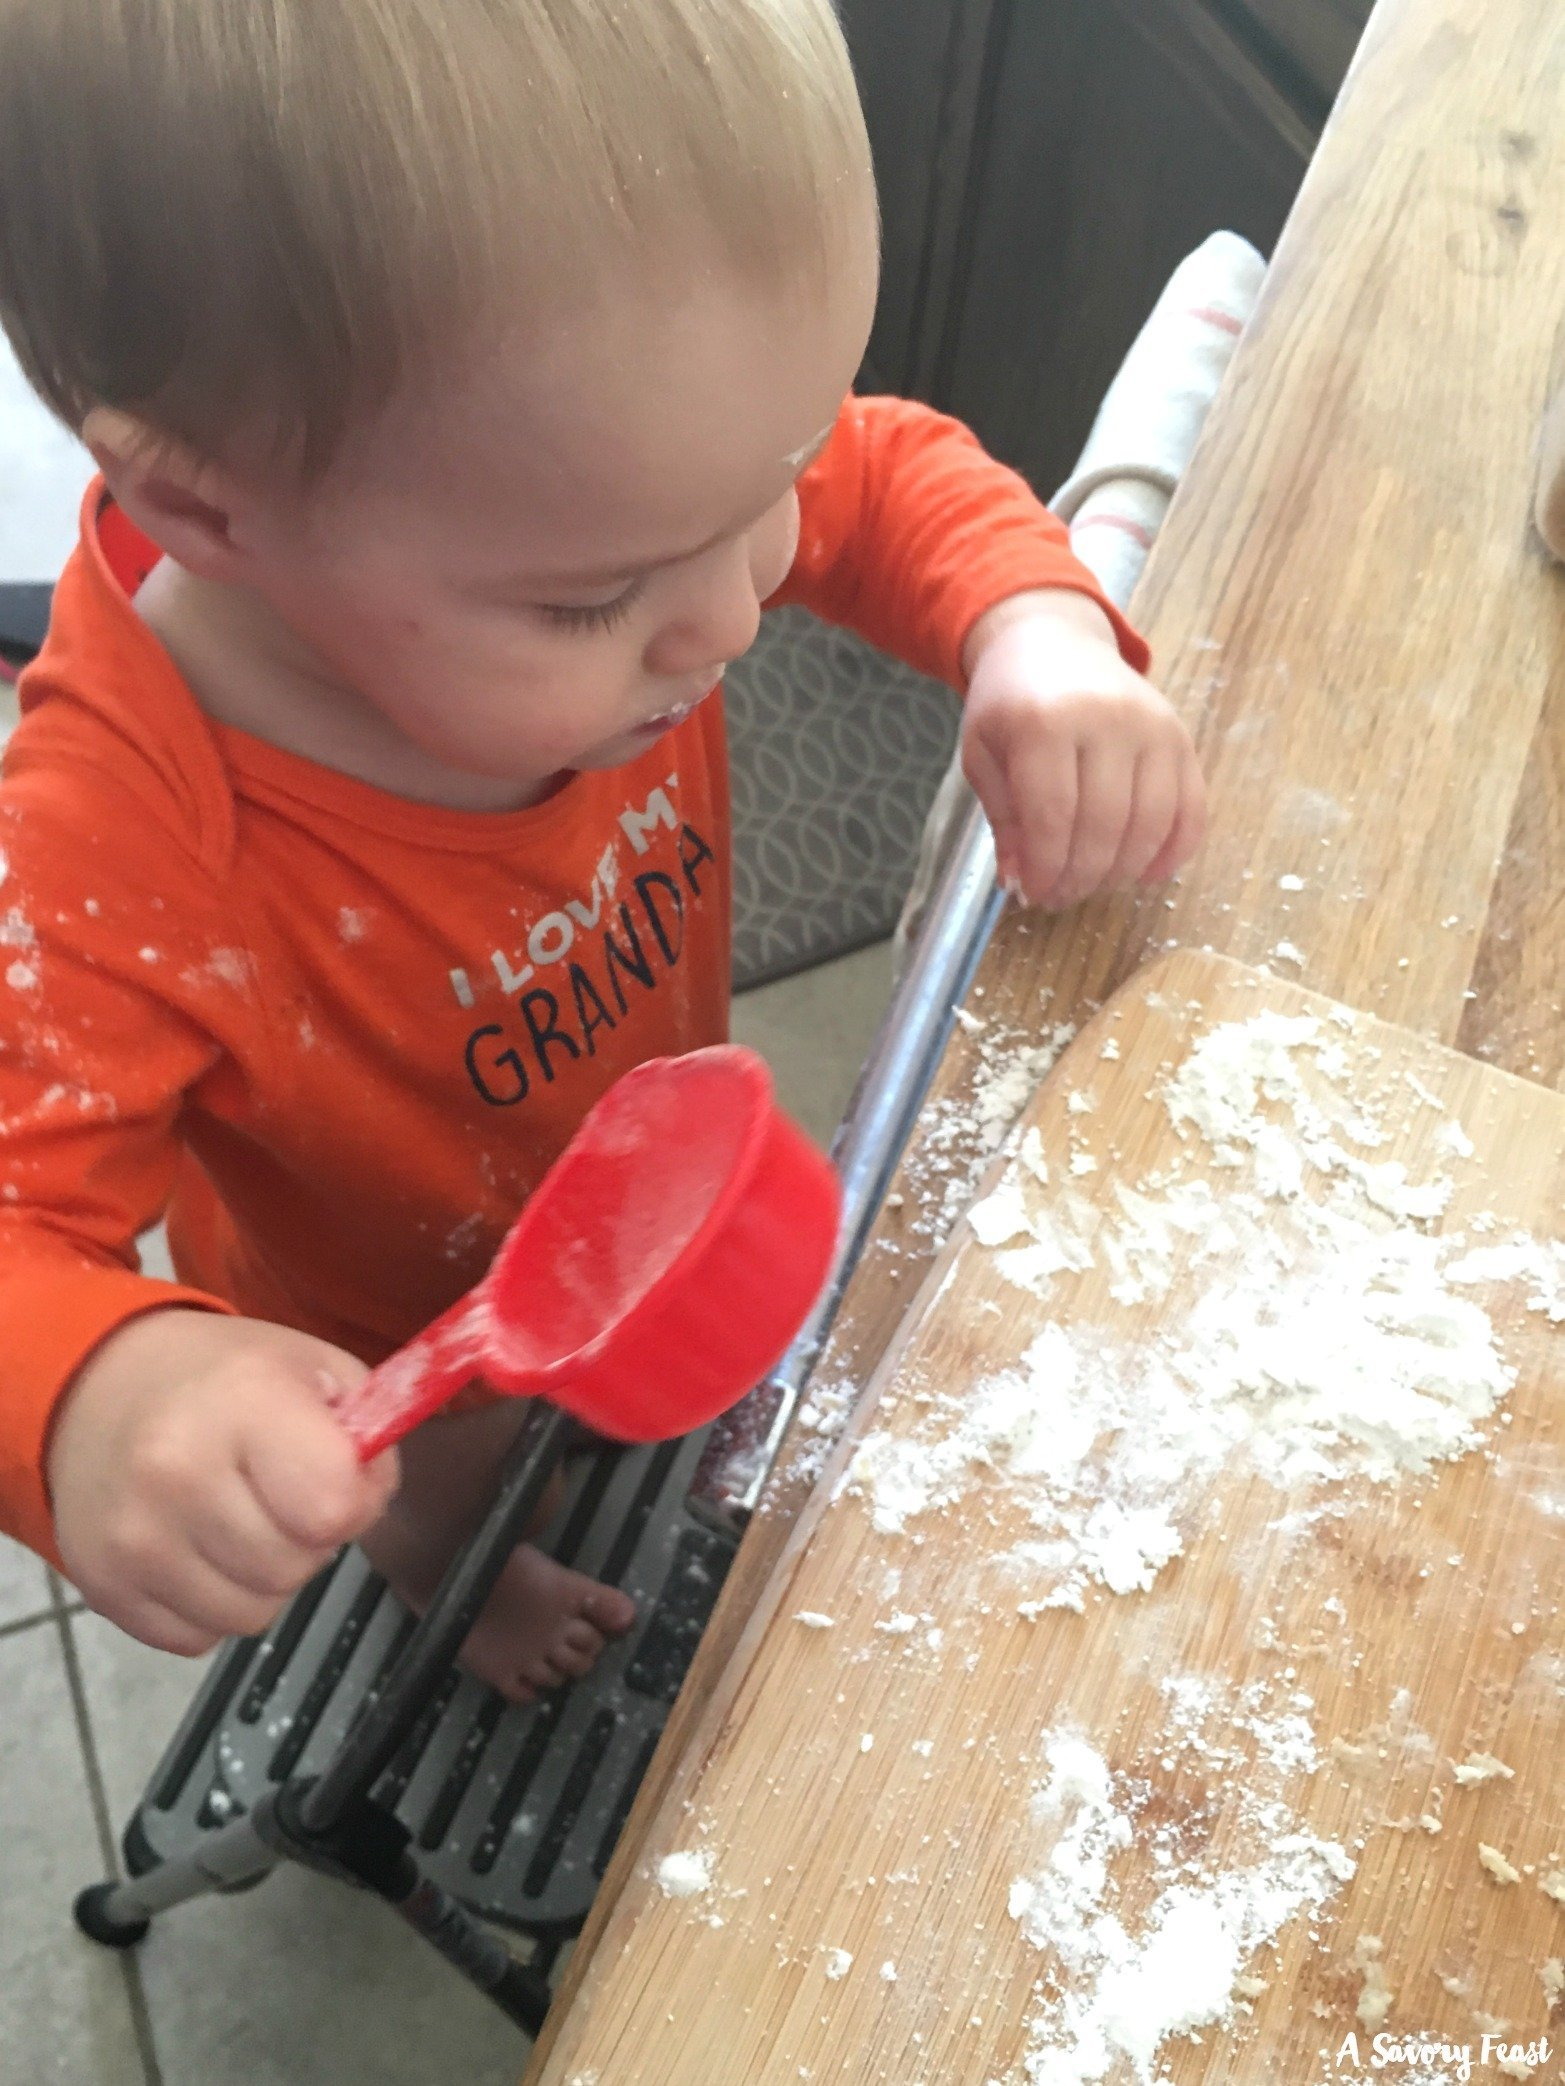 Toddlers can get involved in the kitchen to help make homemade snacks.